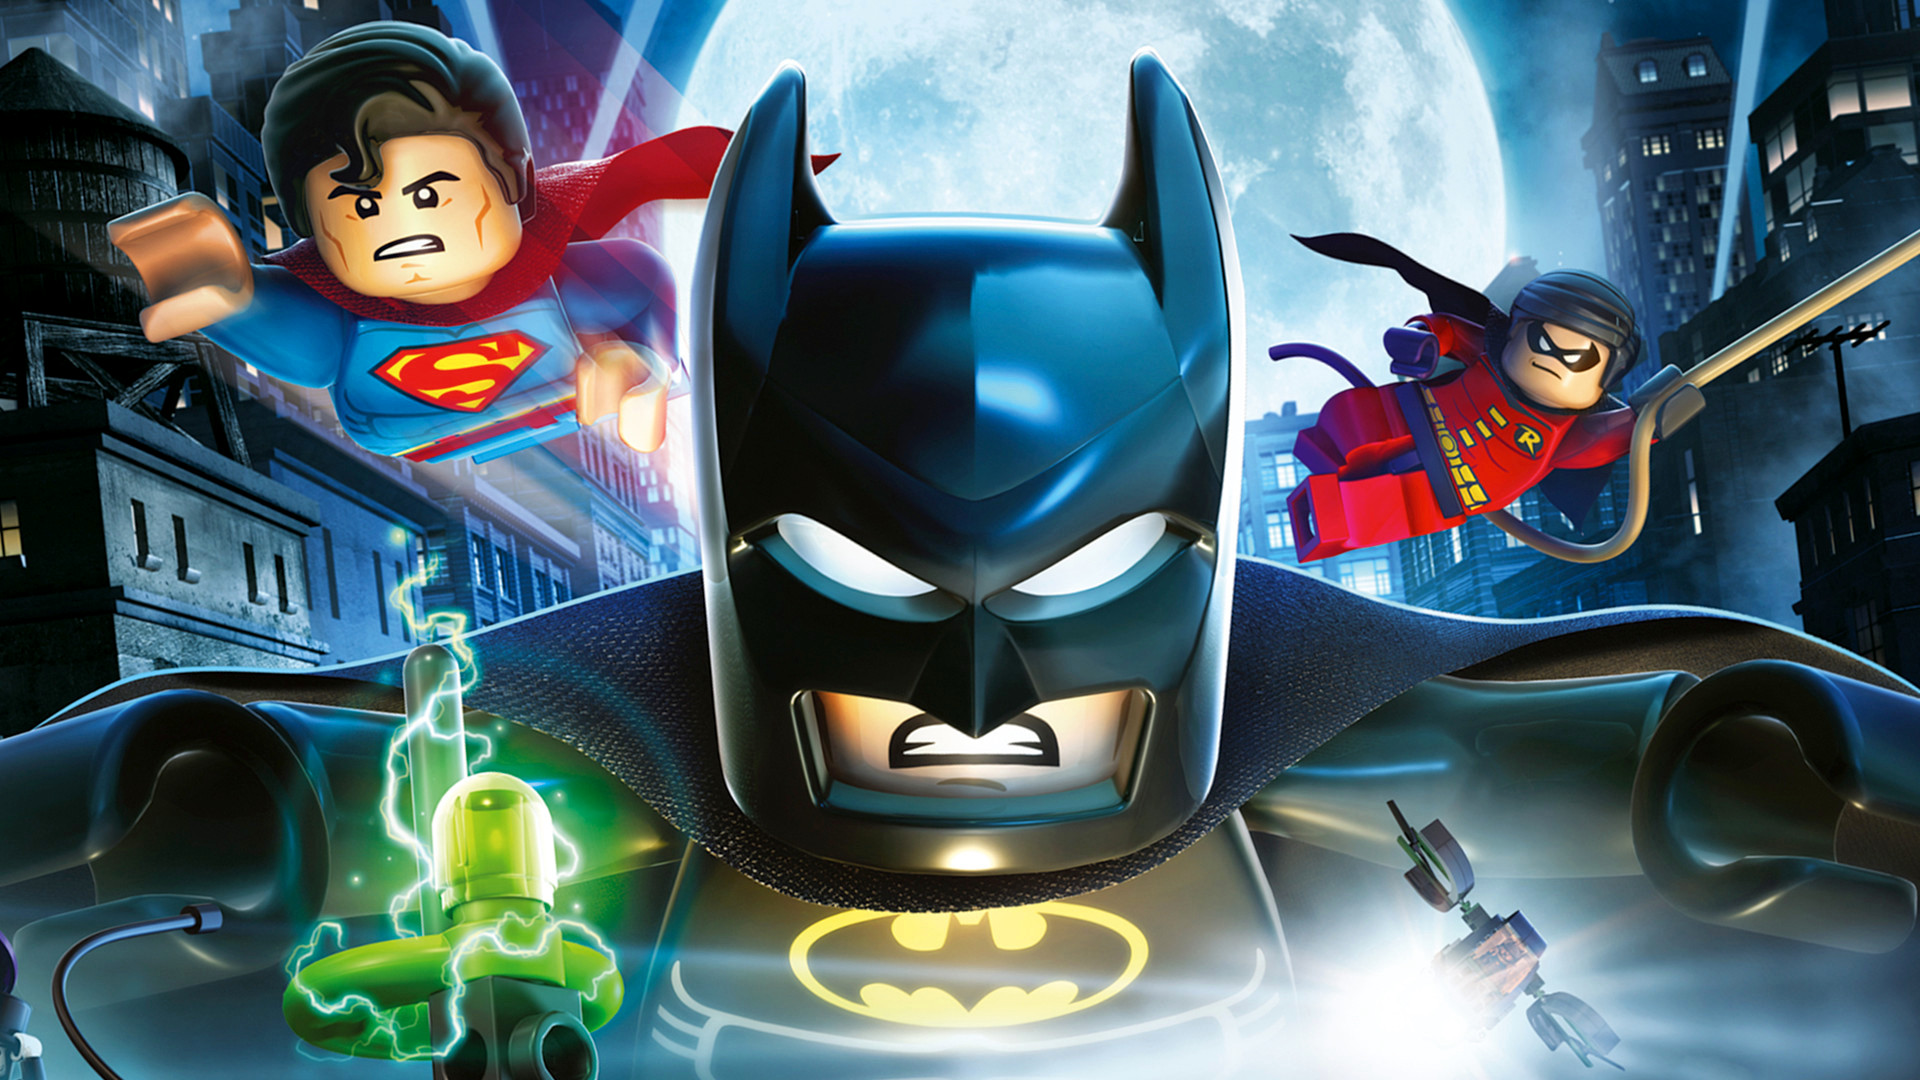 1600x900 The Lego Batman Superman And Robin 1600x900 Resolution Hd